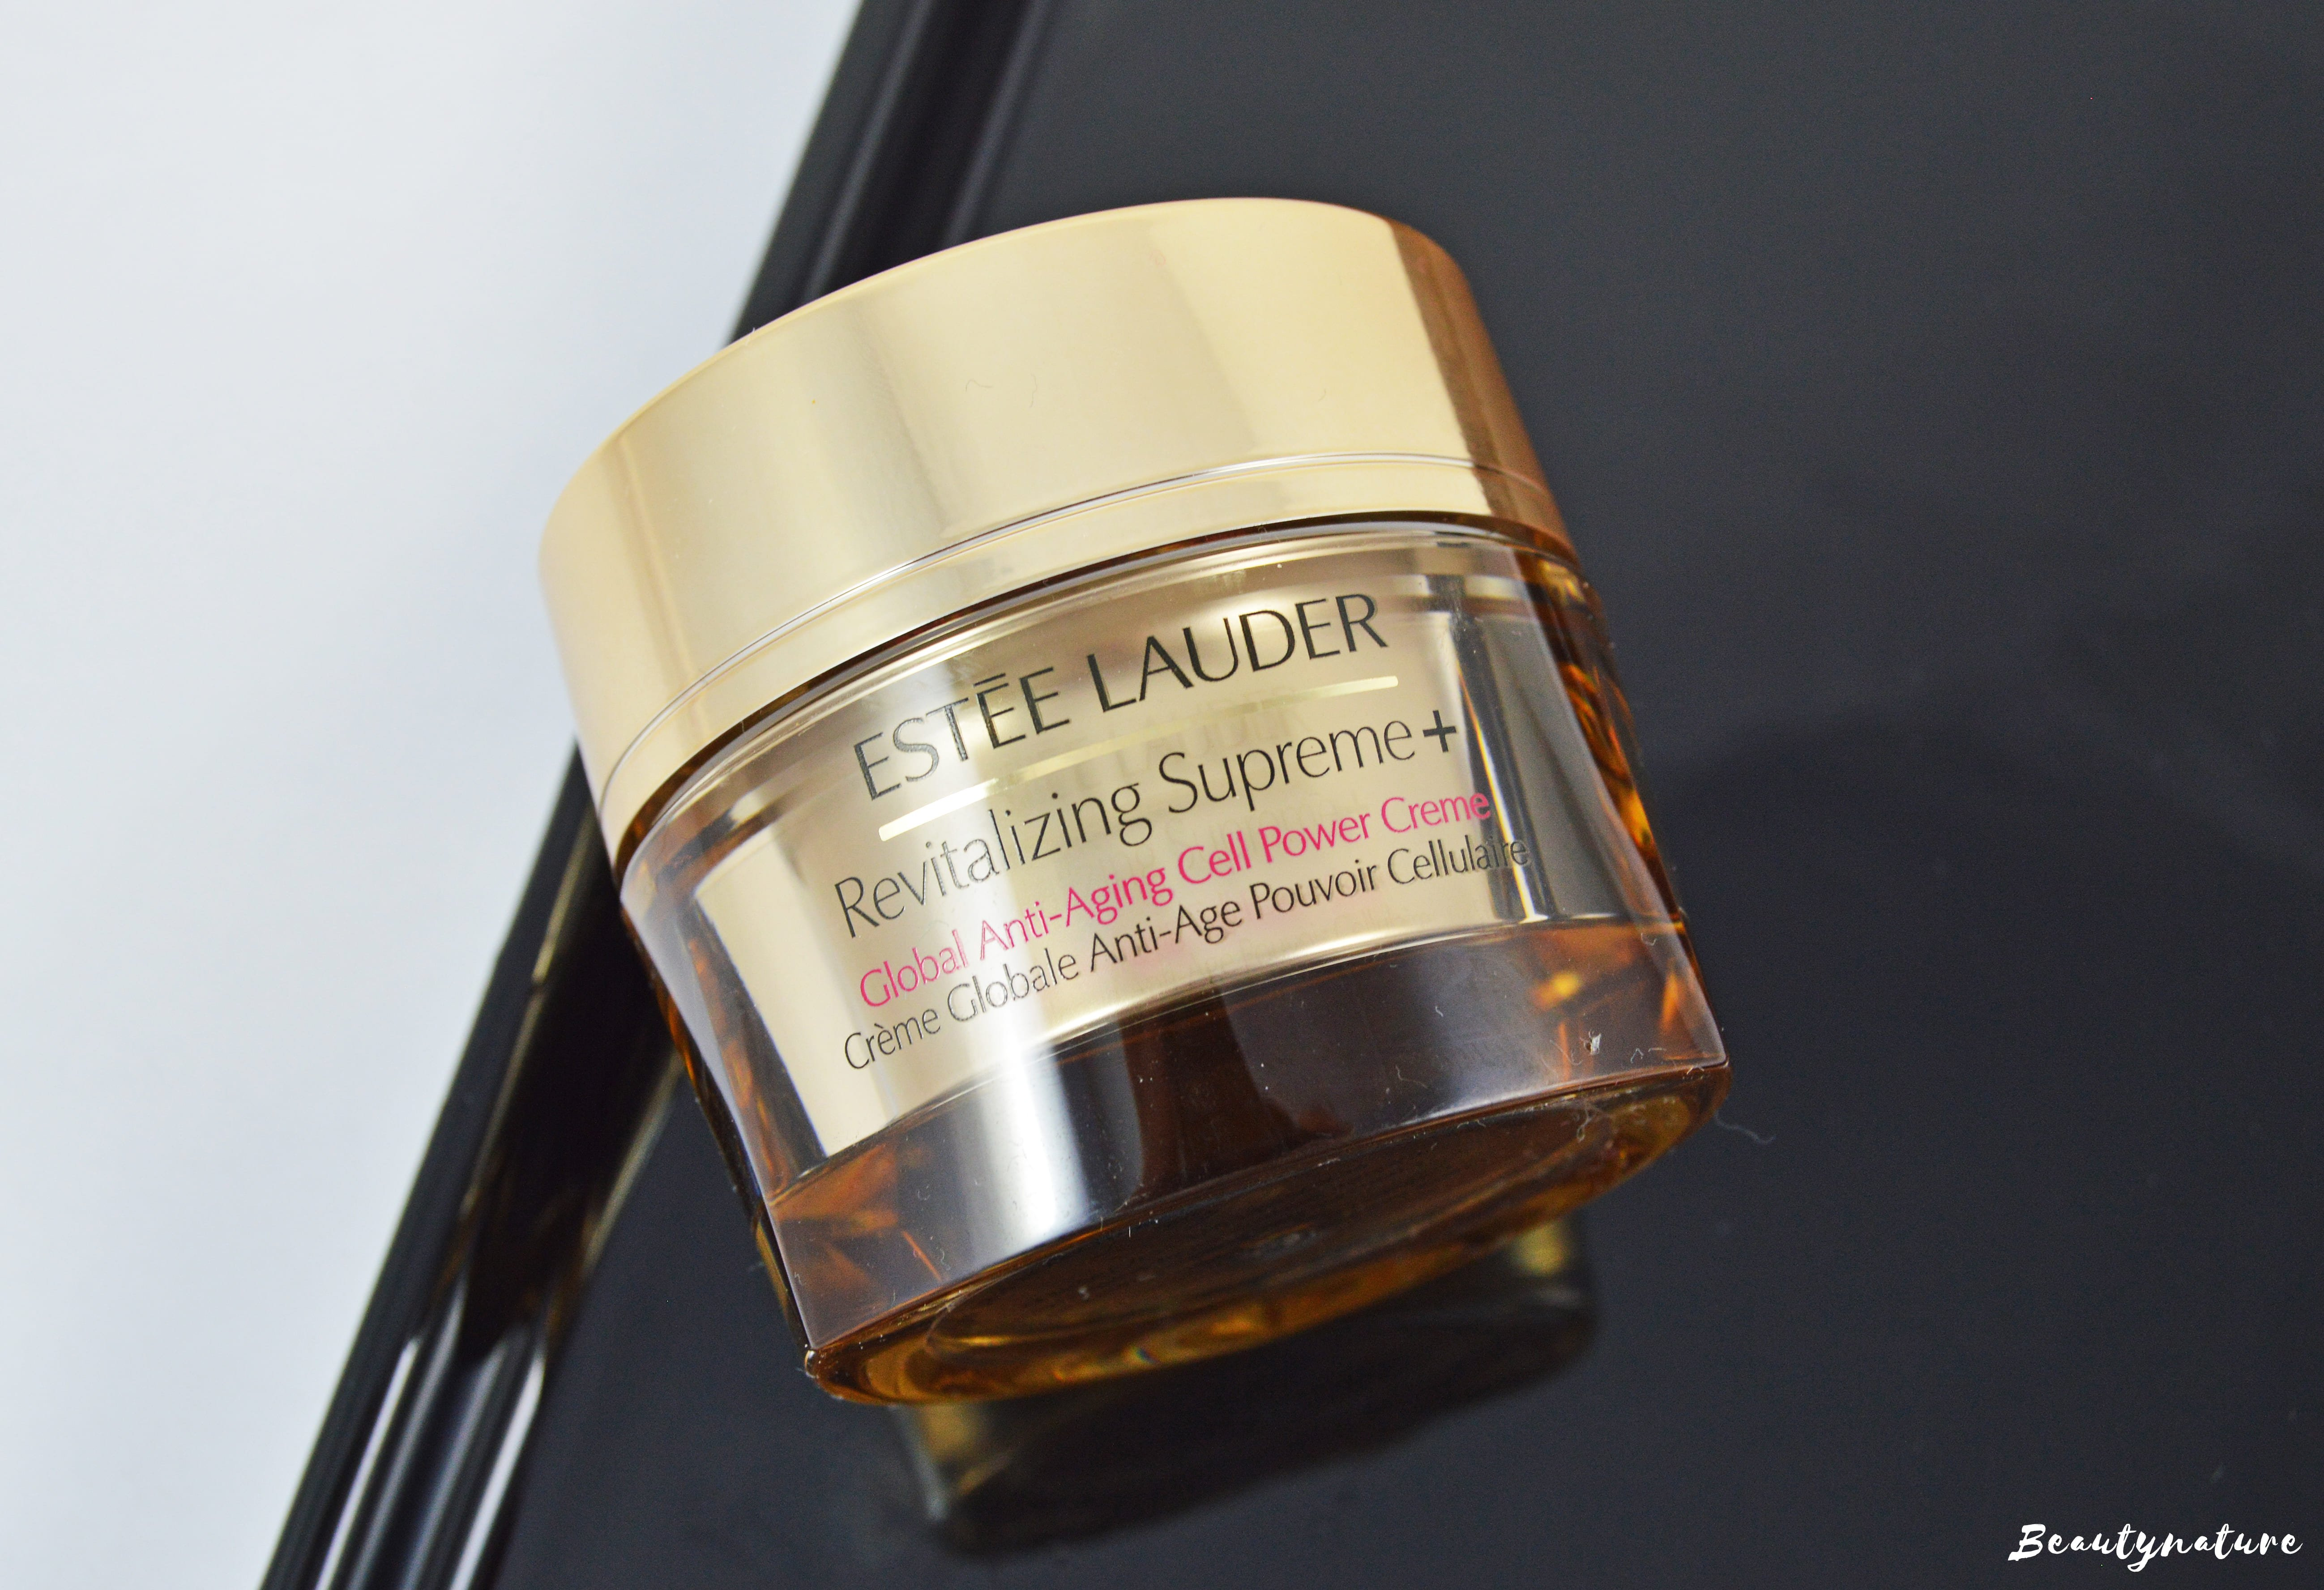 Revitalizing Supreme Plus Global Anti-Aging Cell Power Creme